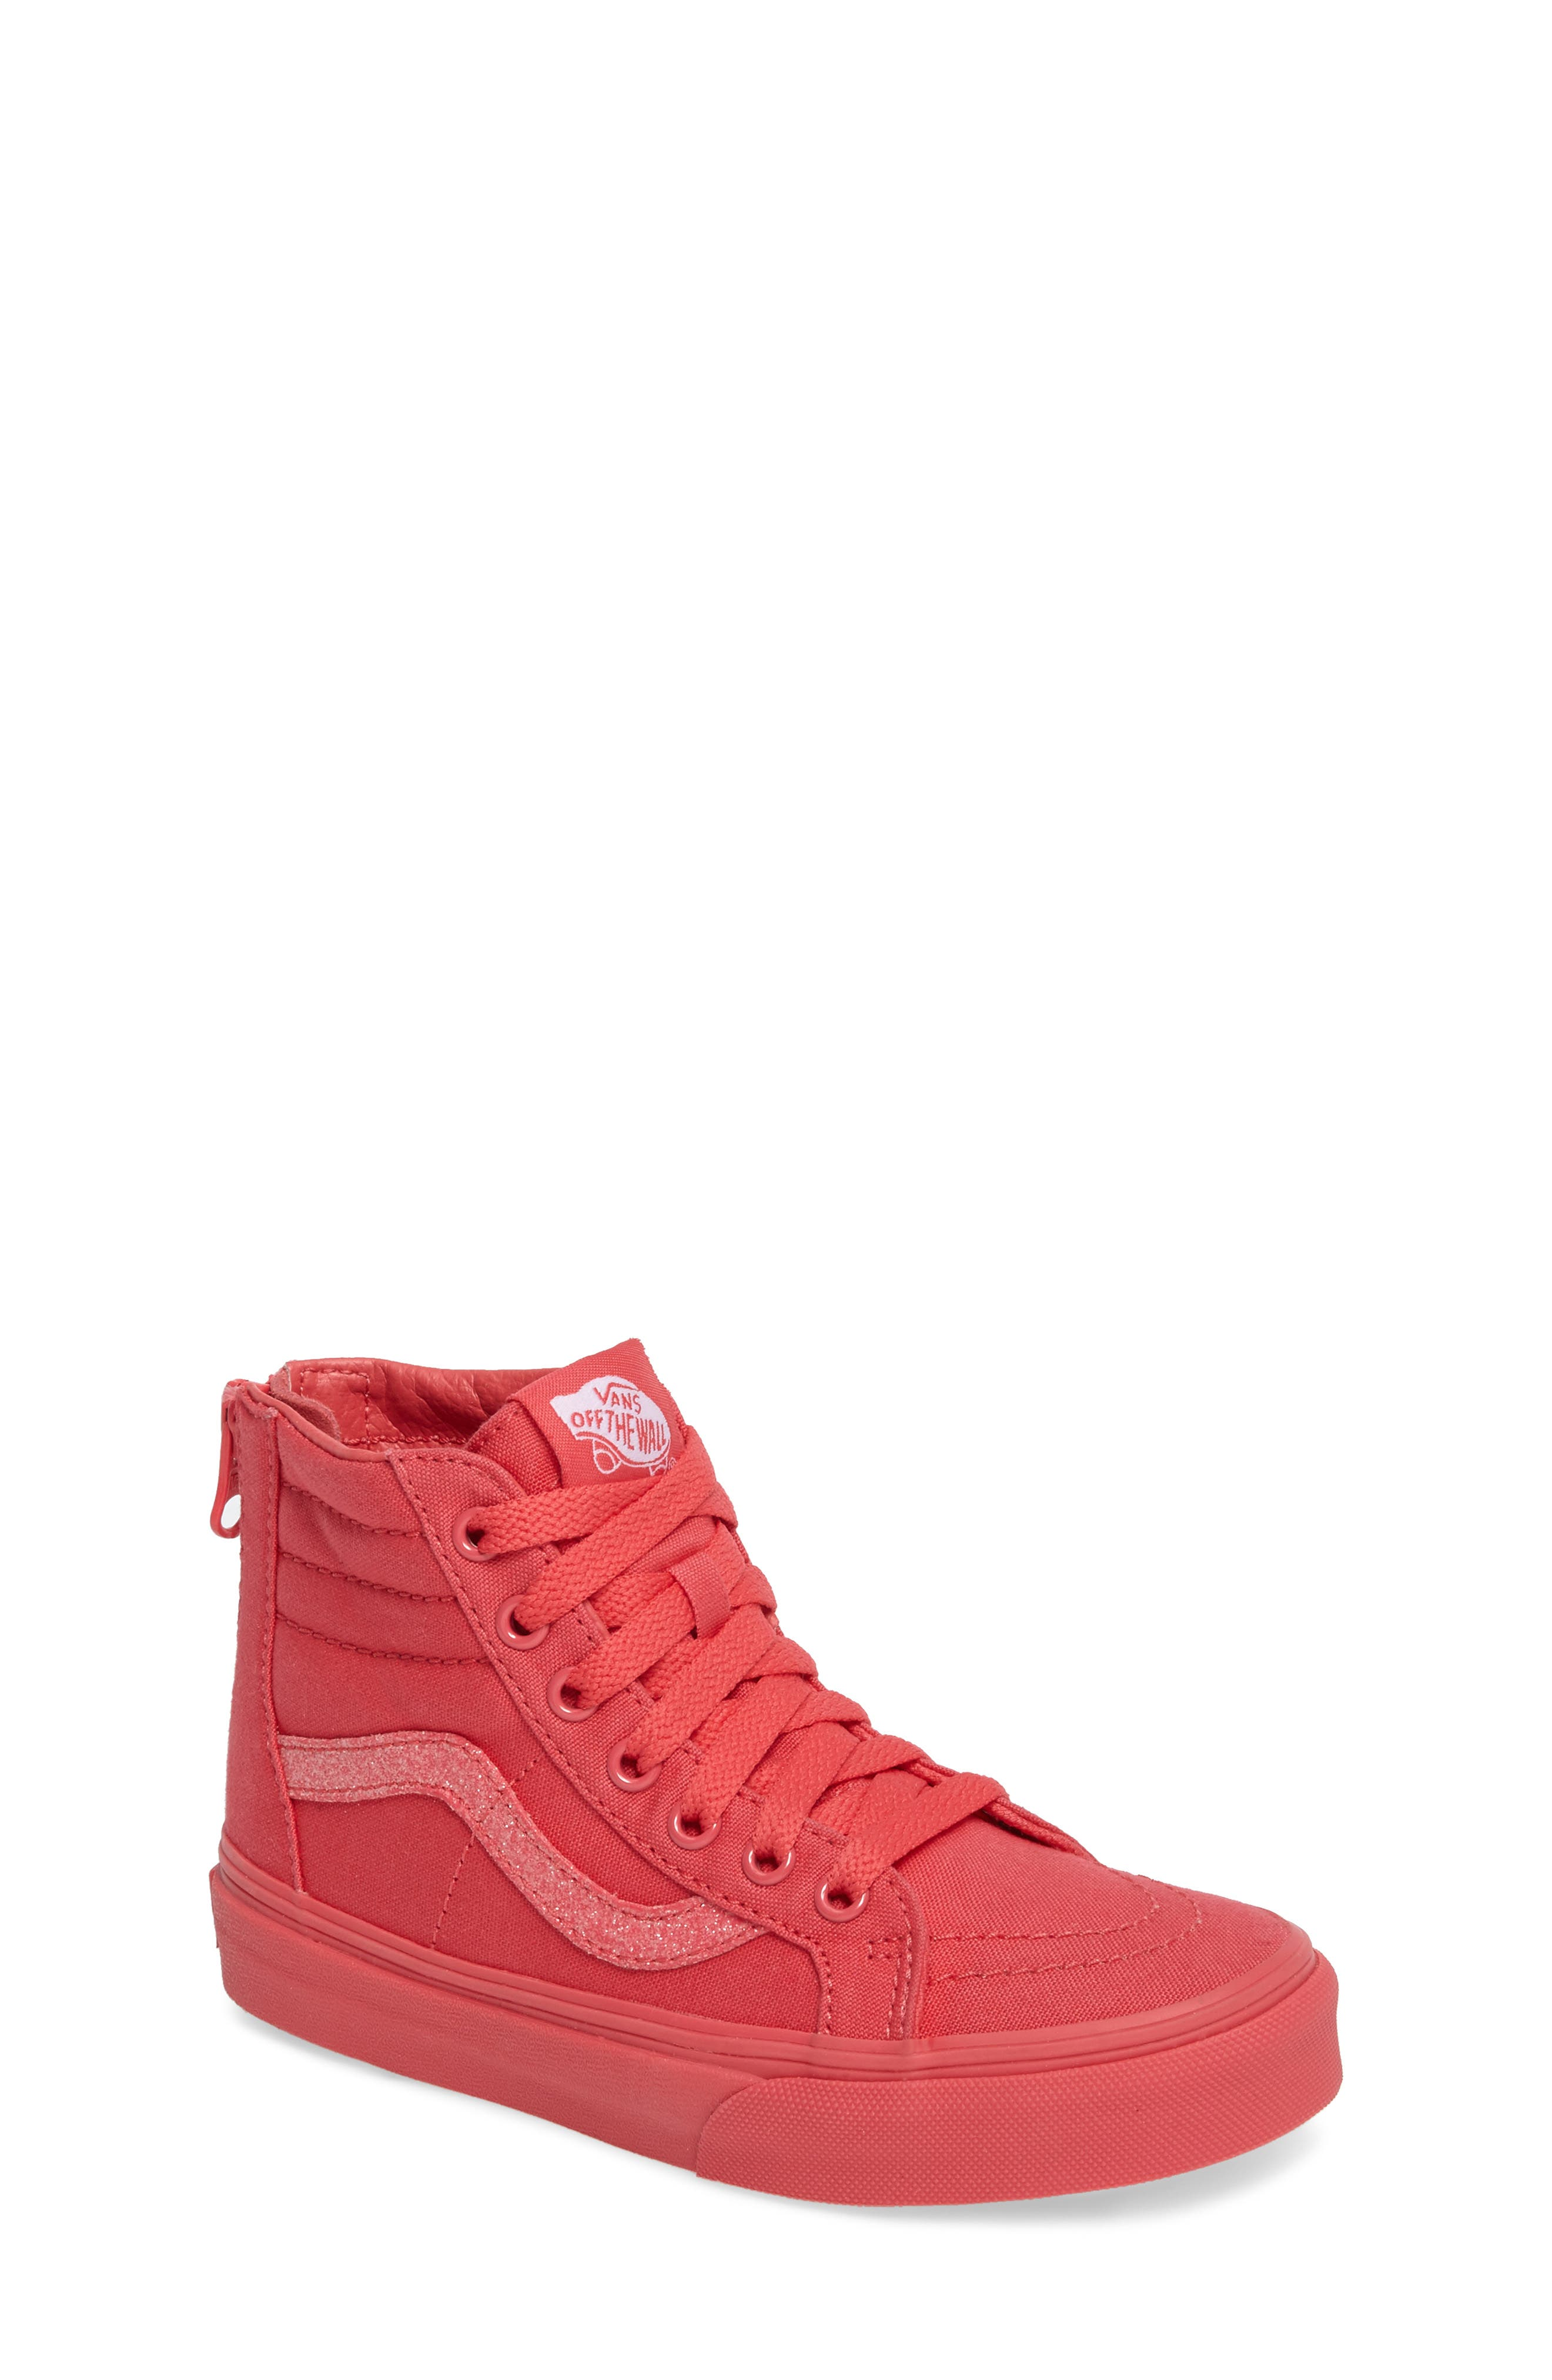 Main Image - Vans SK8-Hi Zip Sneaker (Baby, Walker, Toddler, Little Kid & Big Kid)